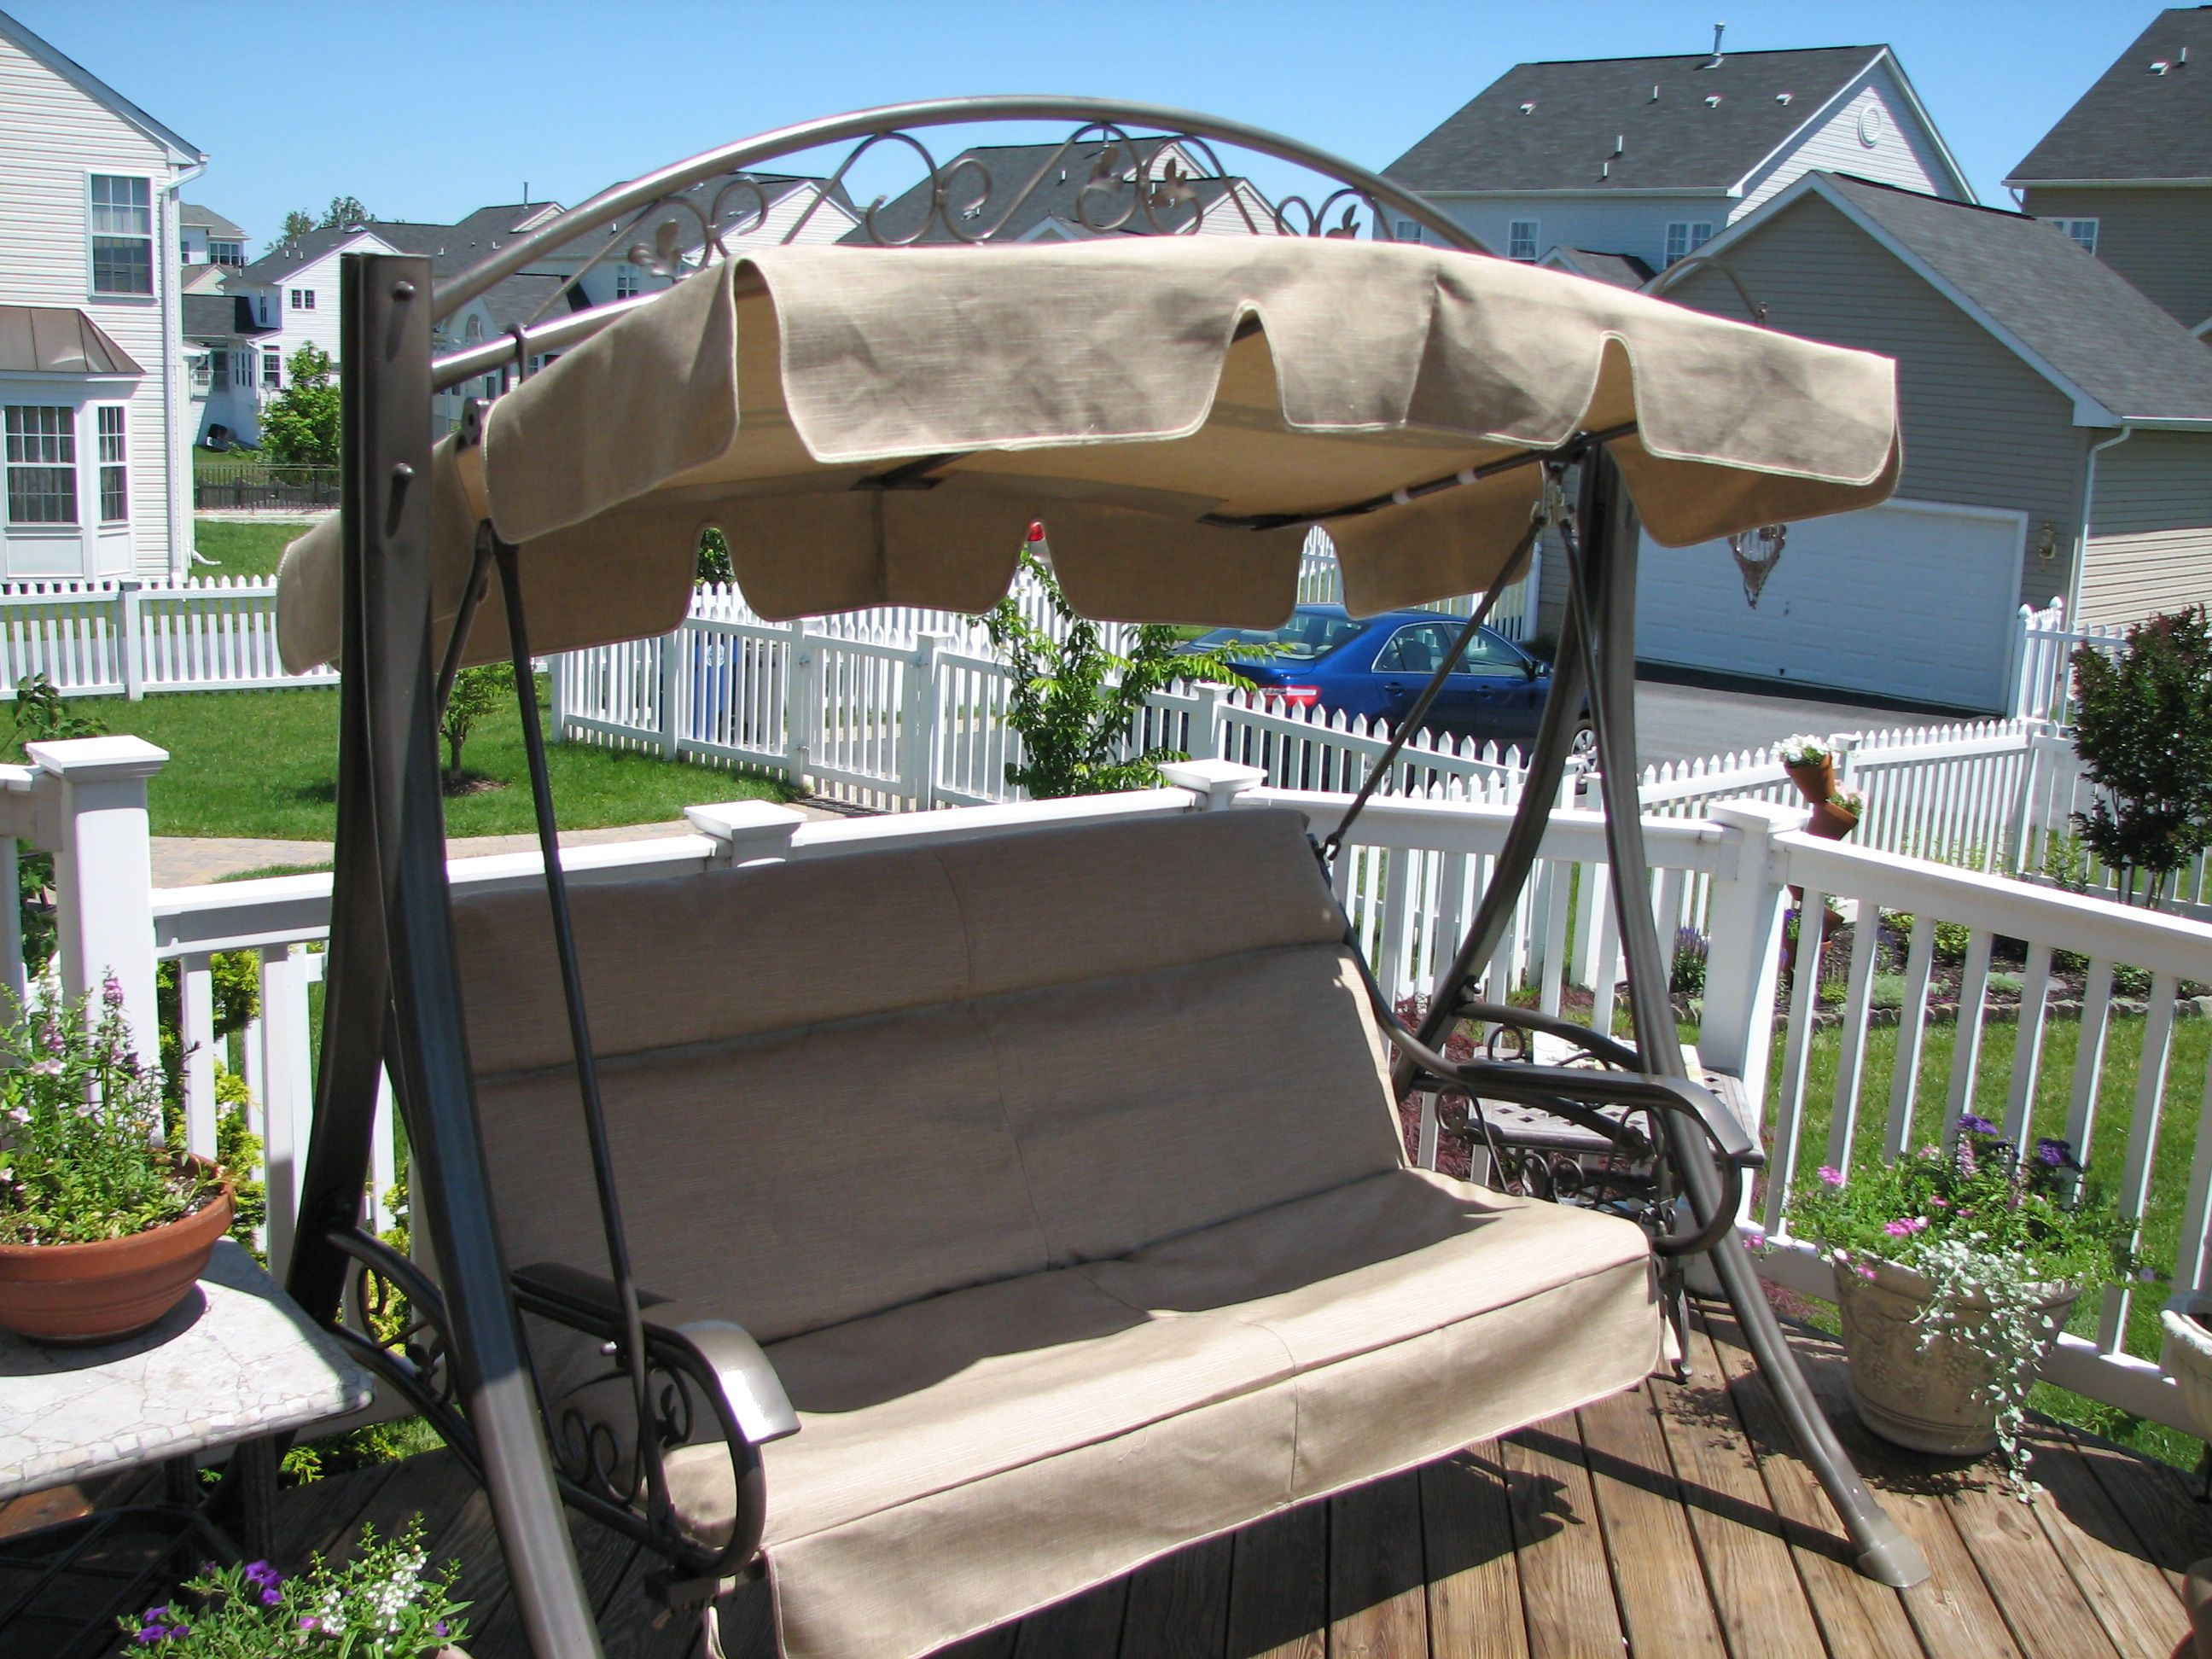 Costco Patio Swing Refurbished Heather Beige Canopy $165